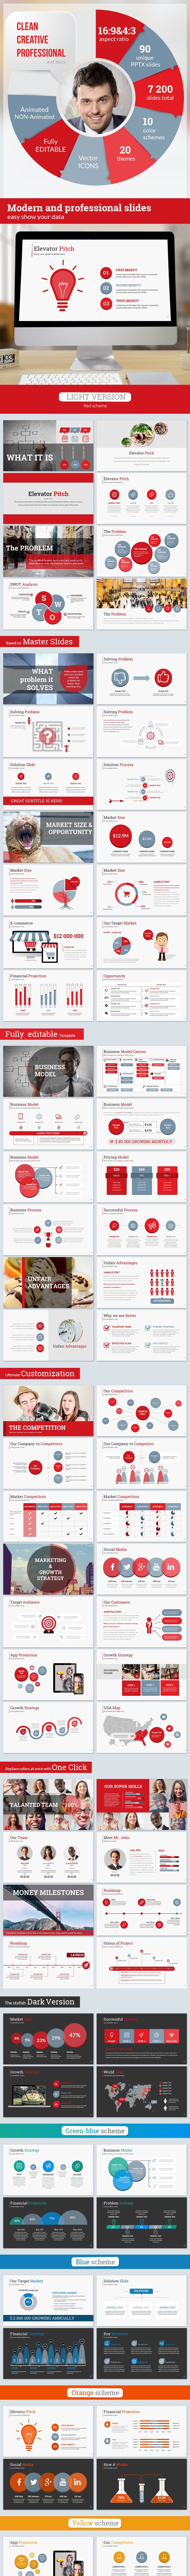 Startup Pitch Deck Leader-Up Presentation Template - Pitch Deck PowerPoint Templates